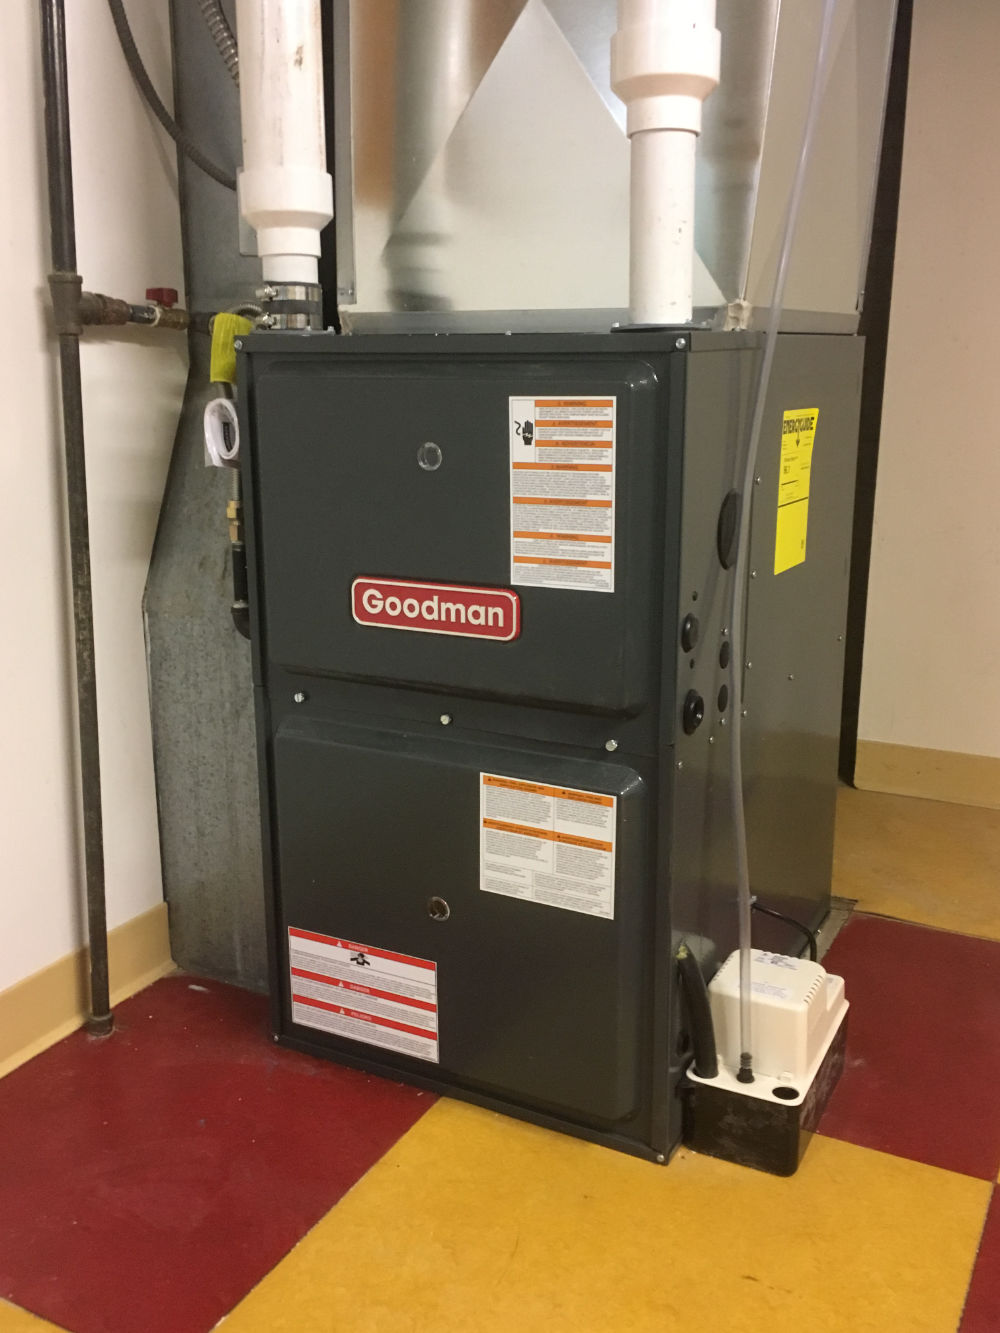 Bountiful HVAC can handle complex installations